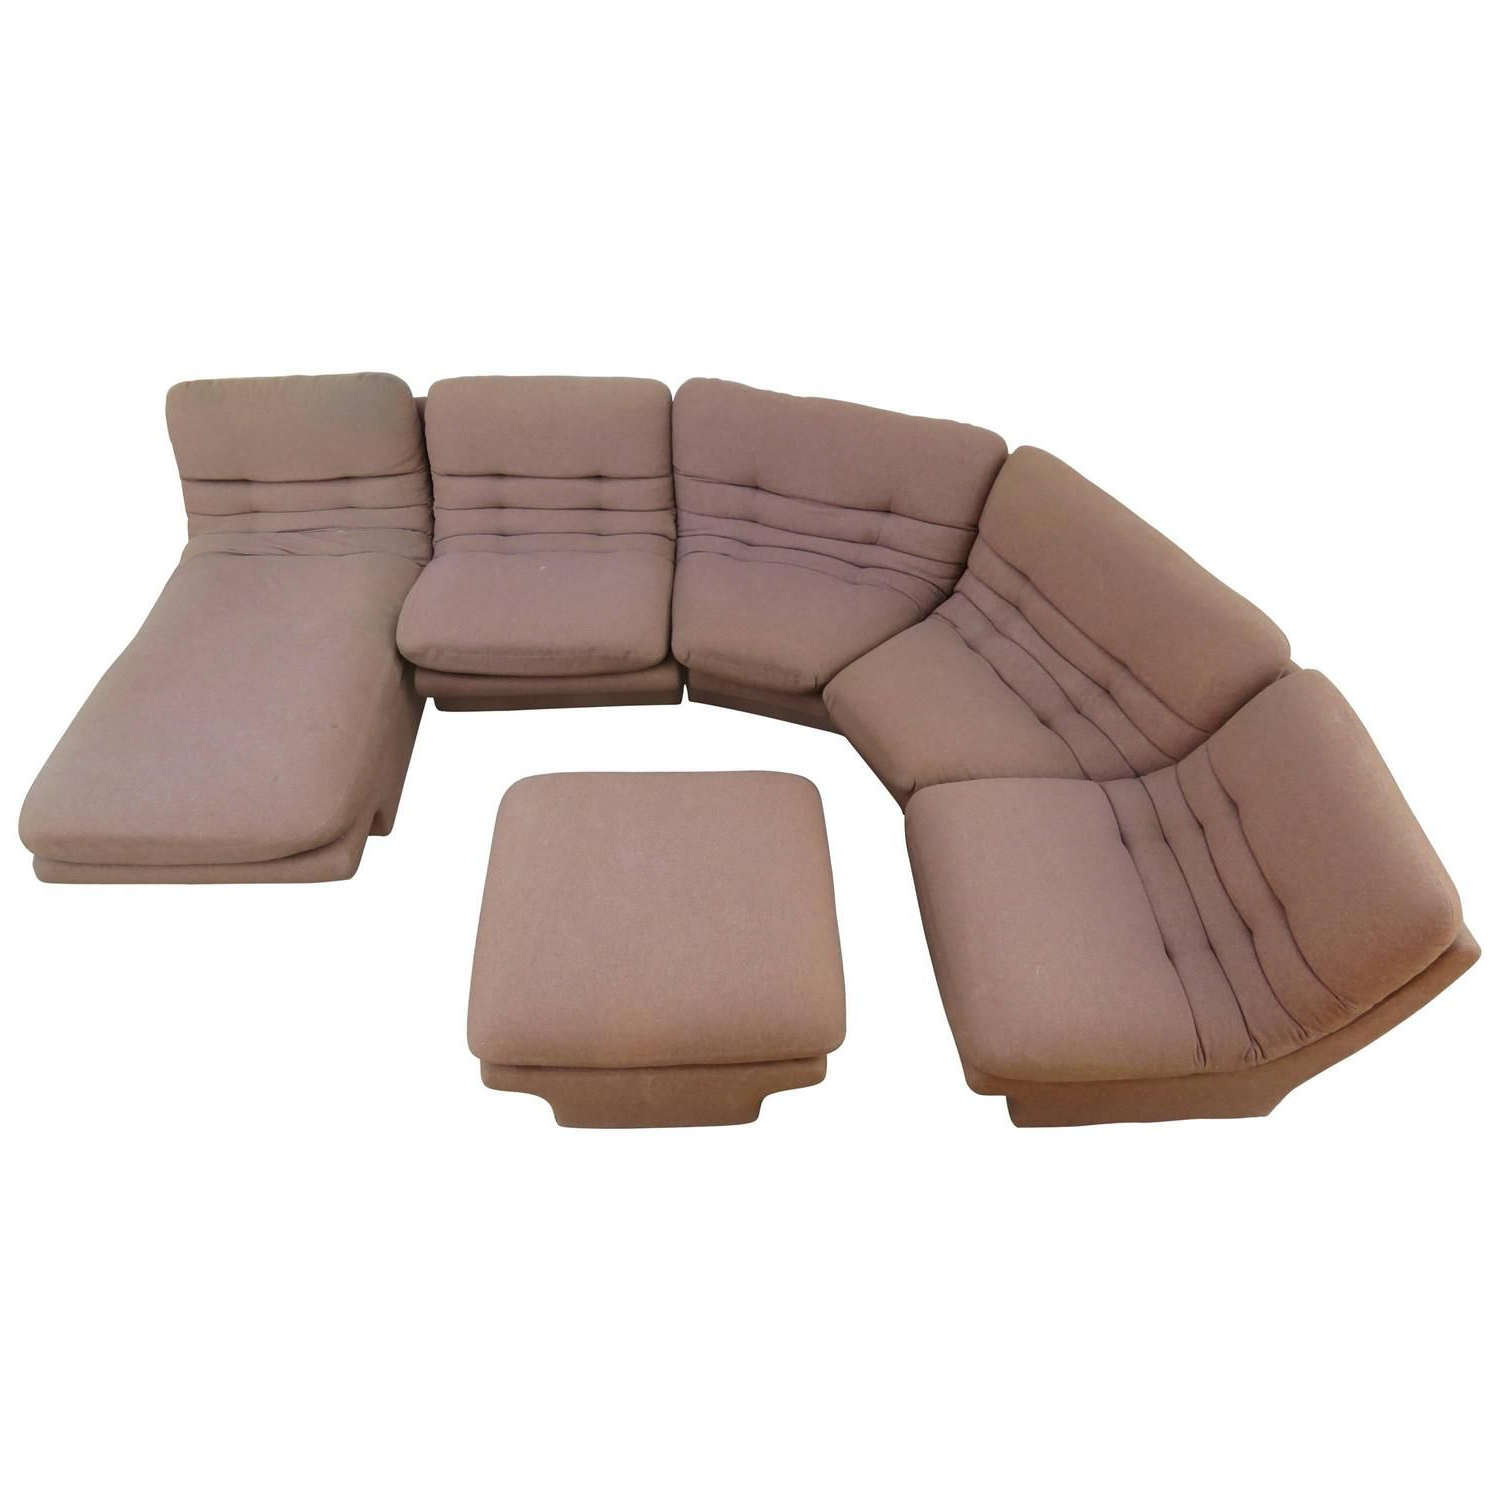 Sectional Regarding Florence Mid Century Modern Right Sectional Sofas Cognac Tan (View 13 of 20)